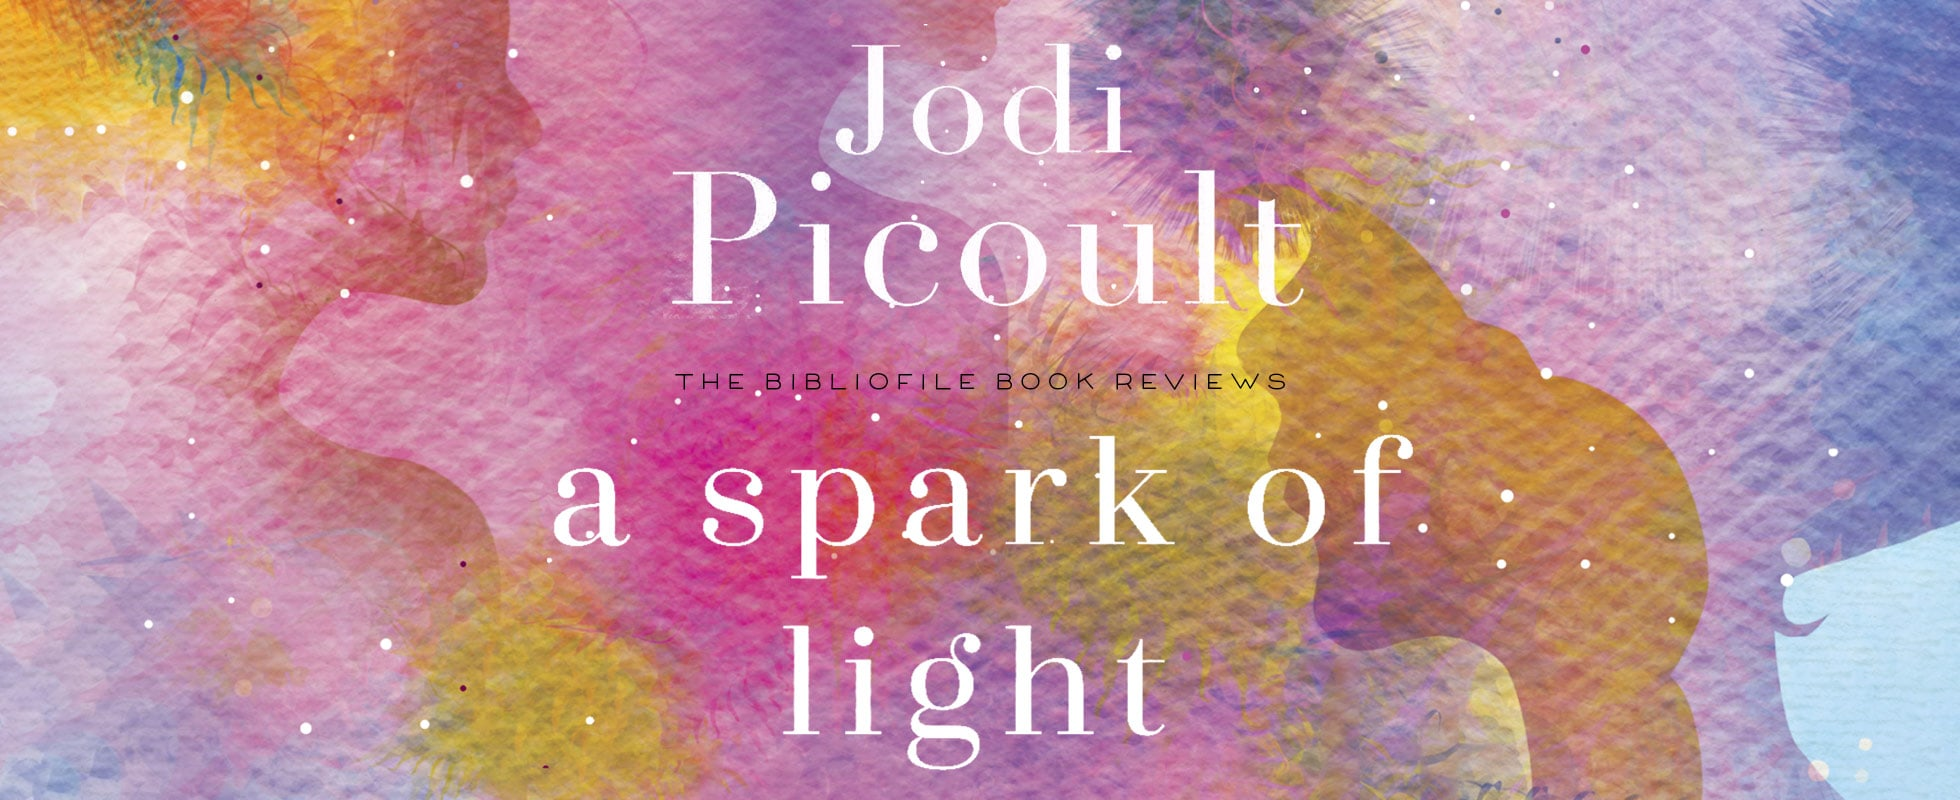 a spark of light by jodi picoult book summary review recap chapter synopsis